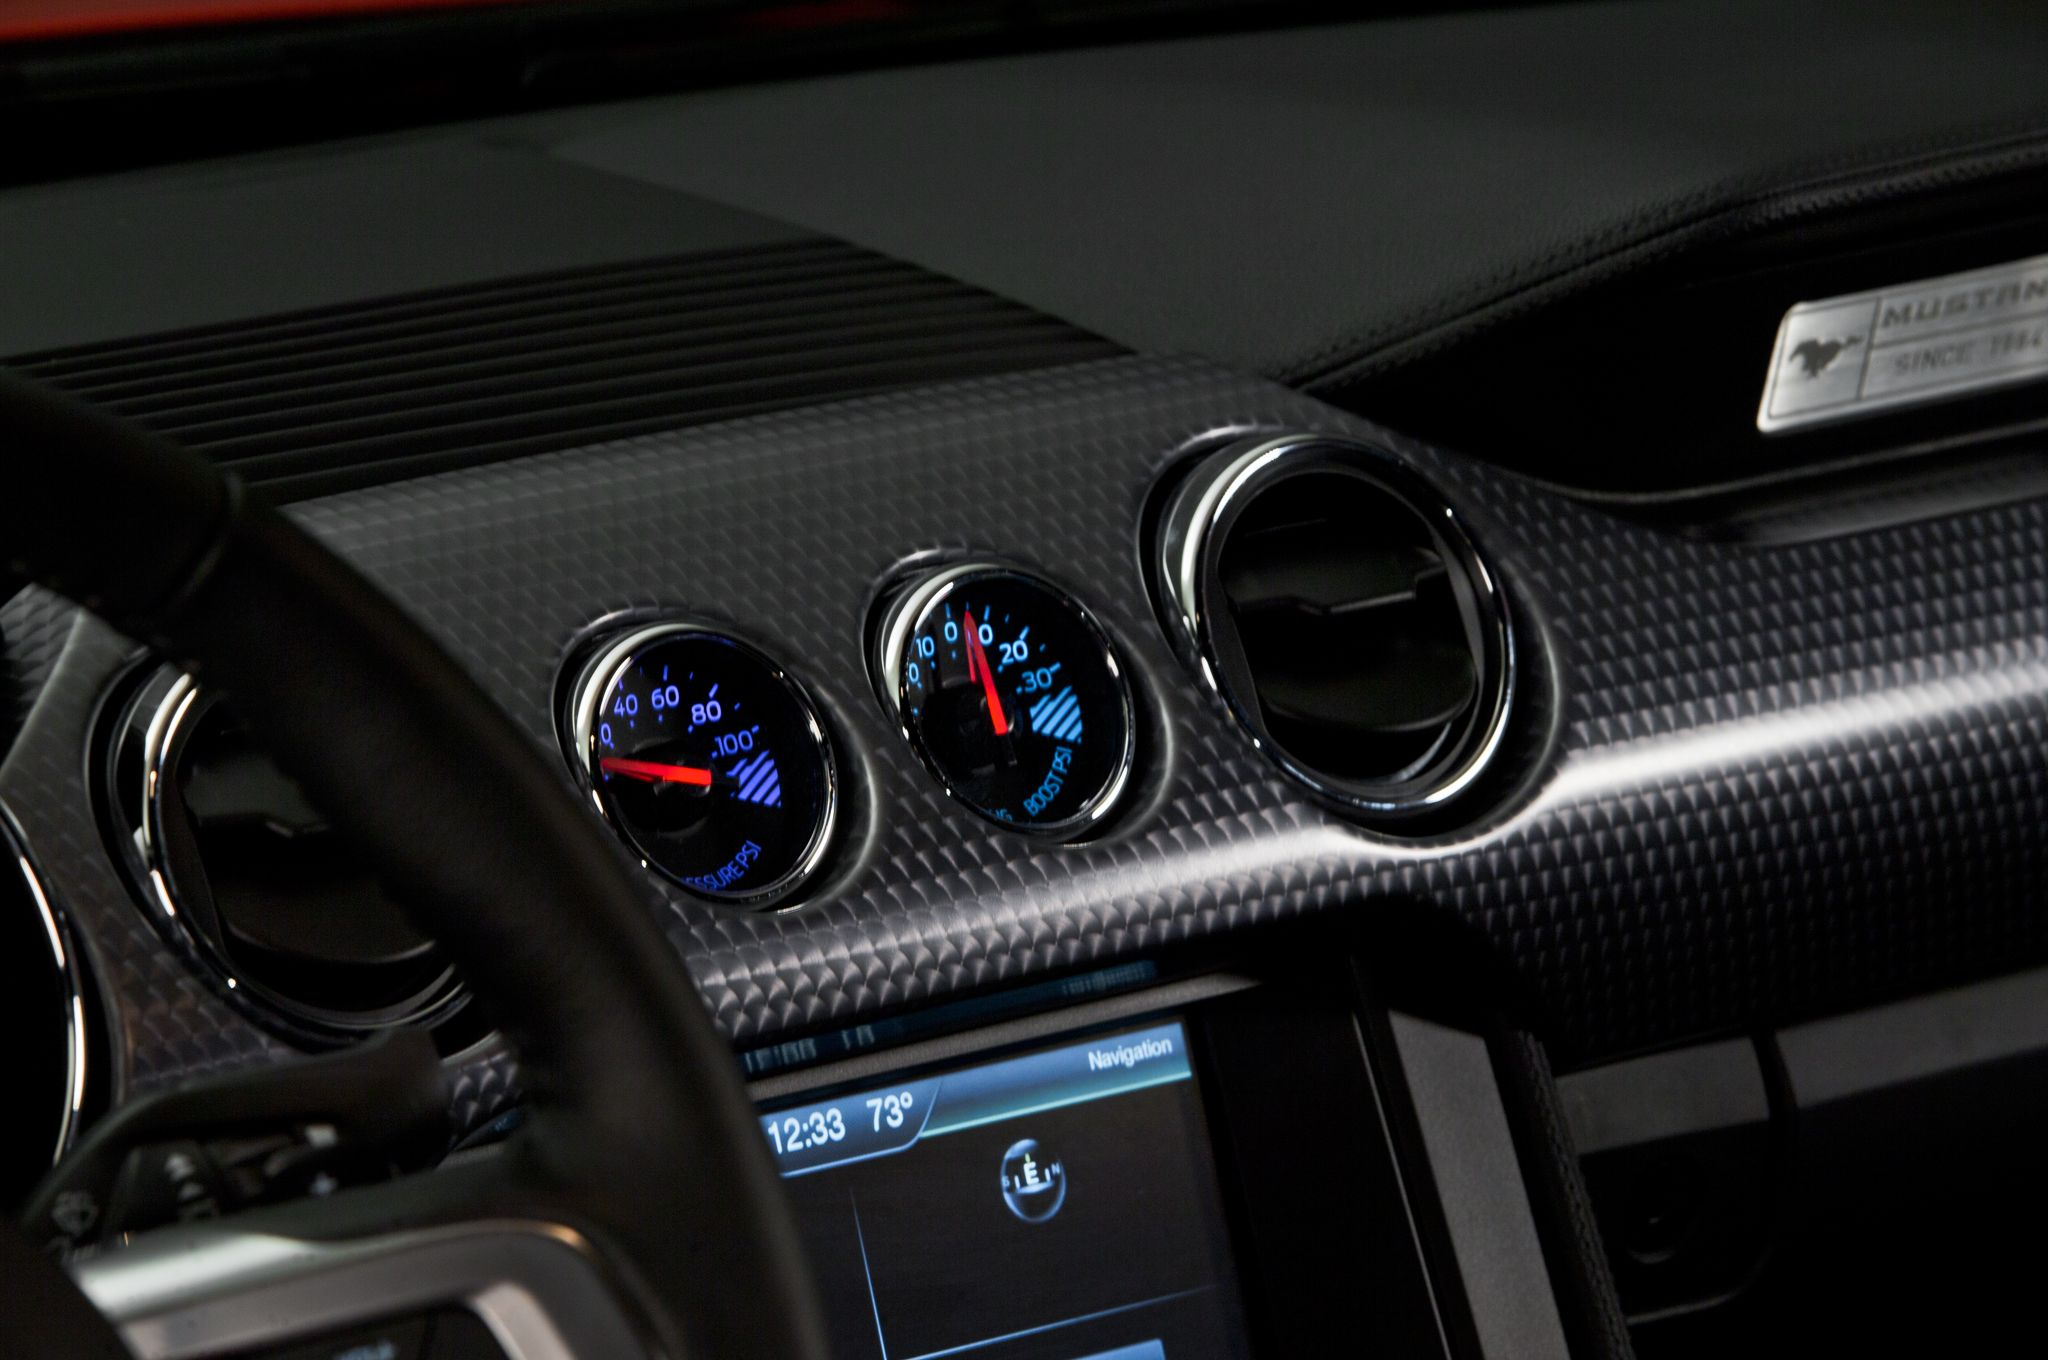 2015 Ford Mustang First Look Ford mustang, 2015 ford